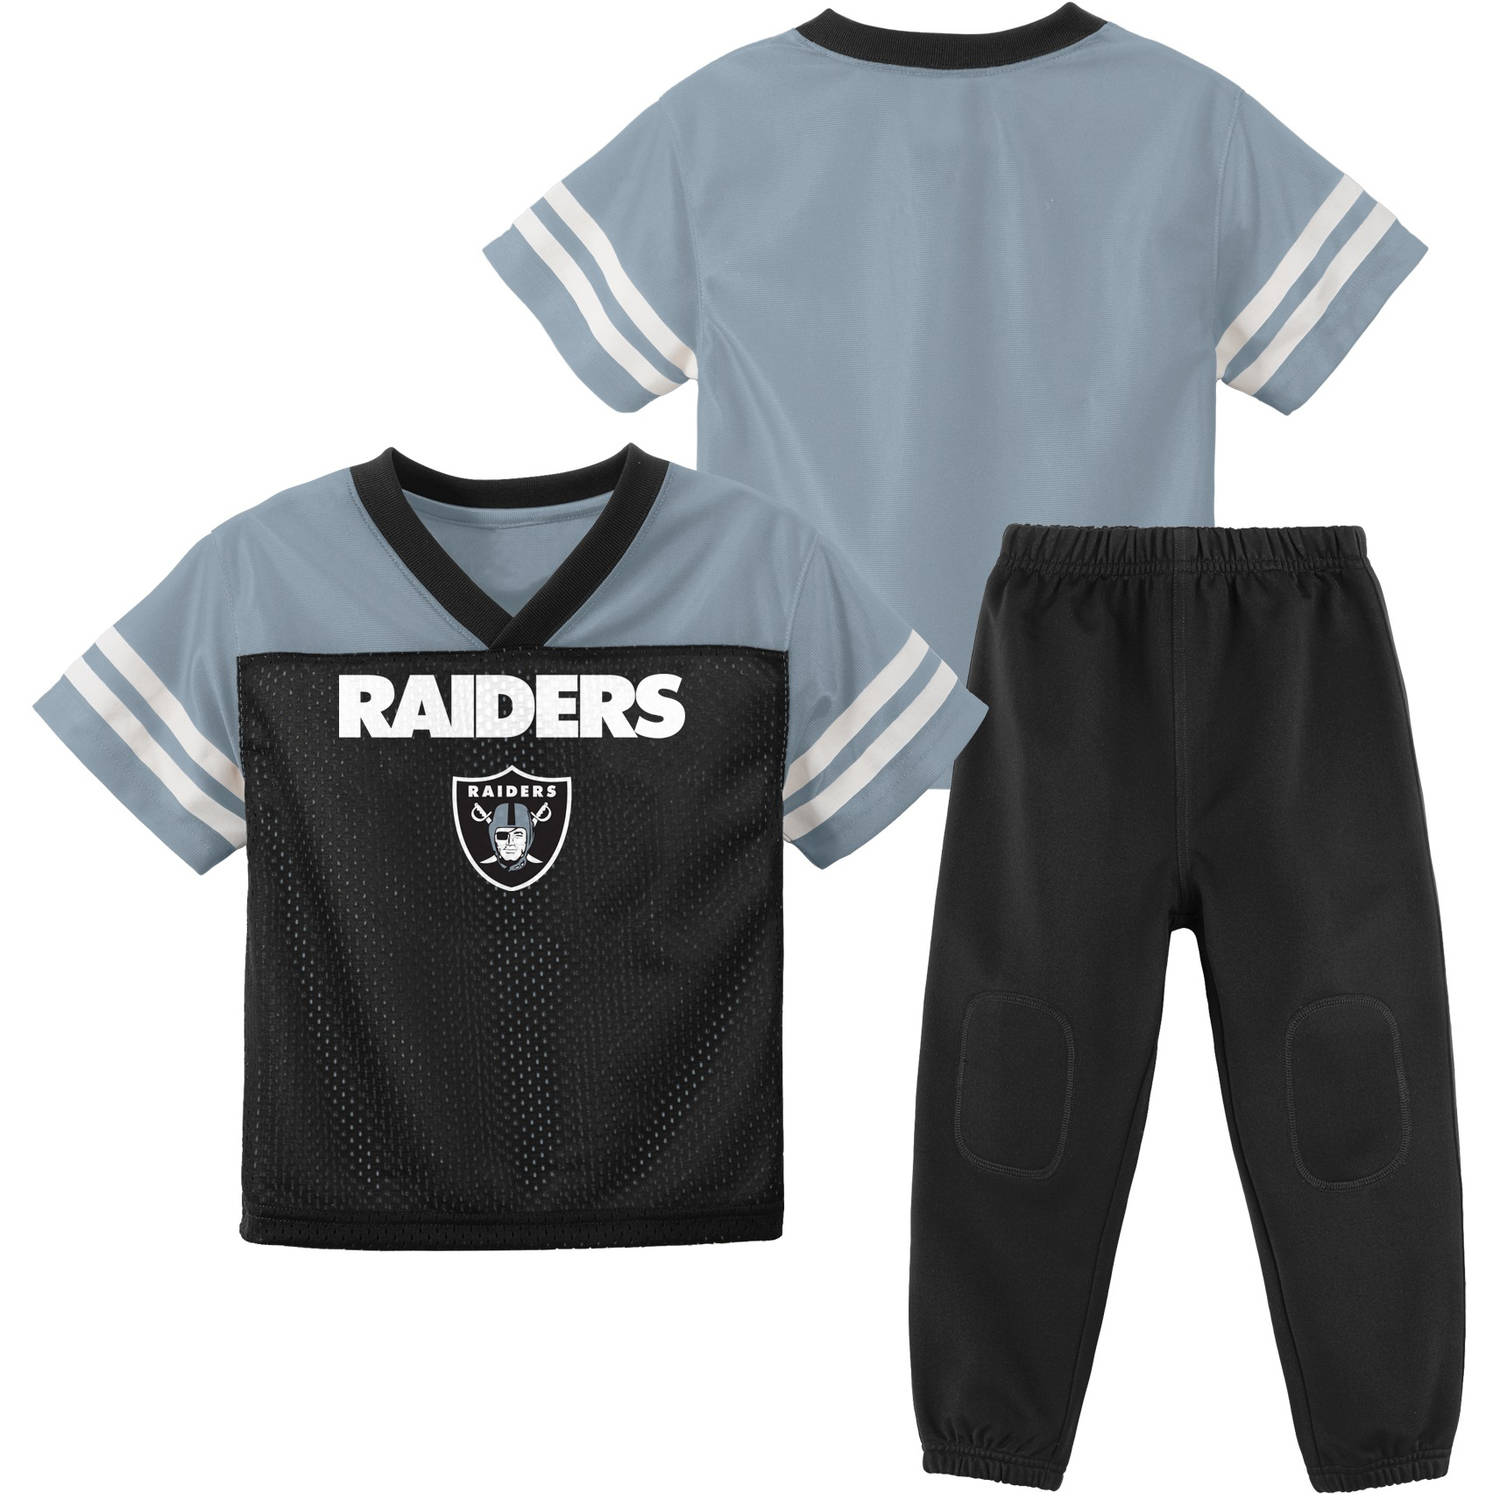 NFL Oakland Raiders Toddler Short Sleeve Top and Pant Set